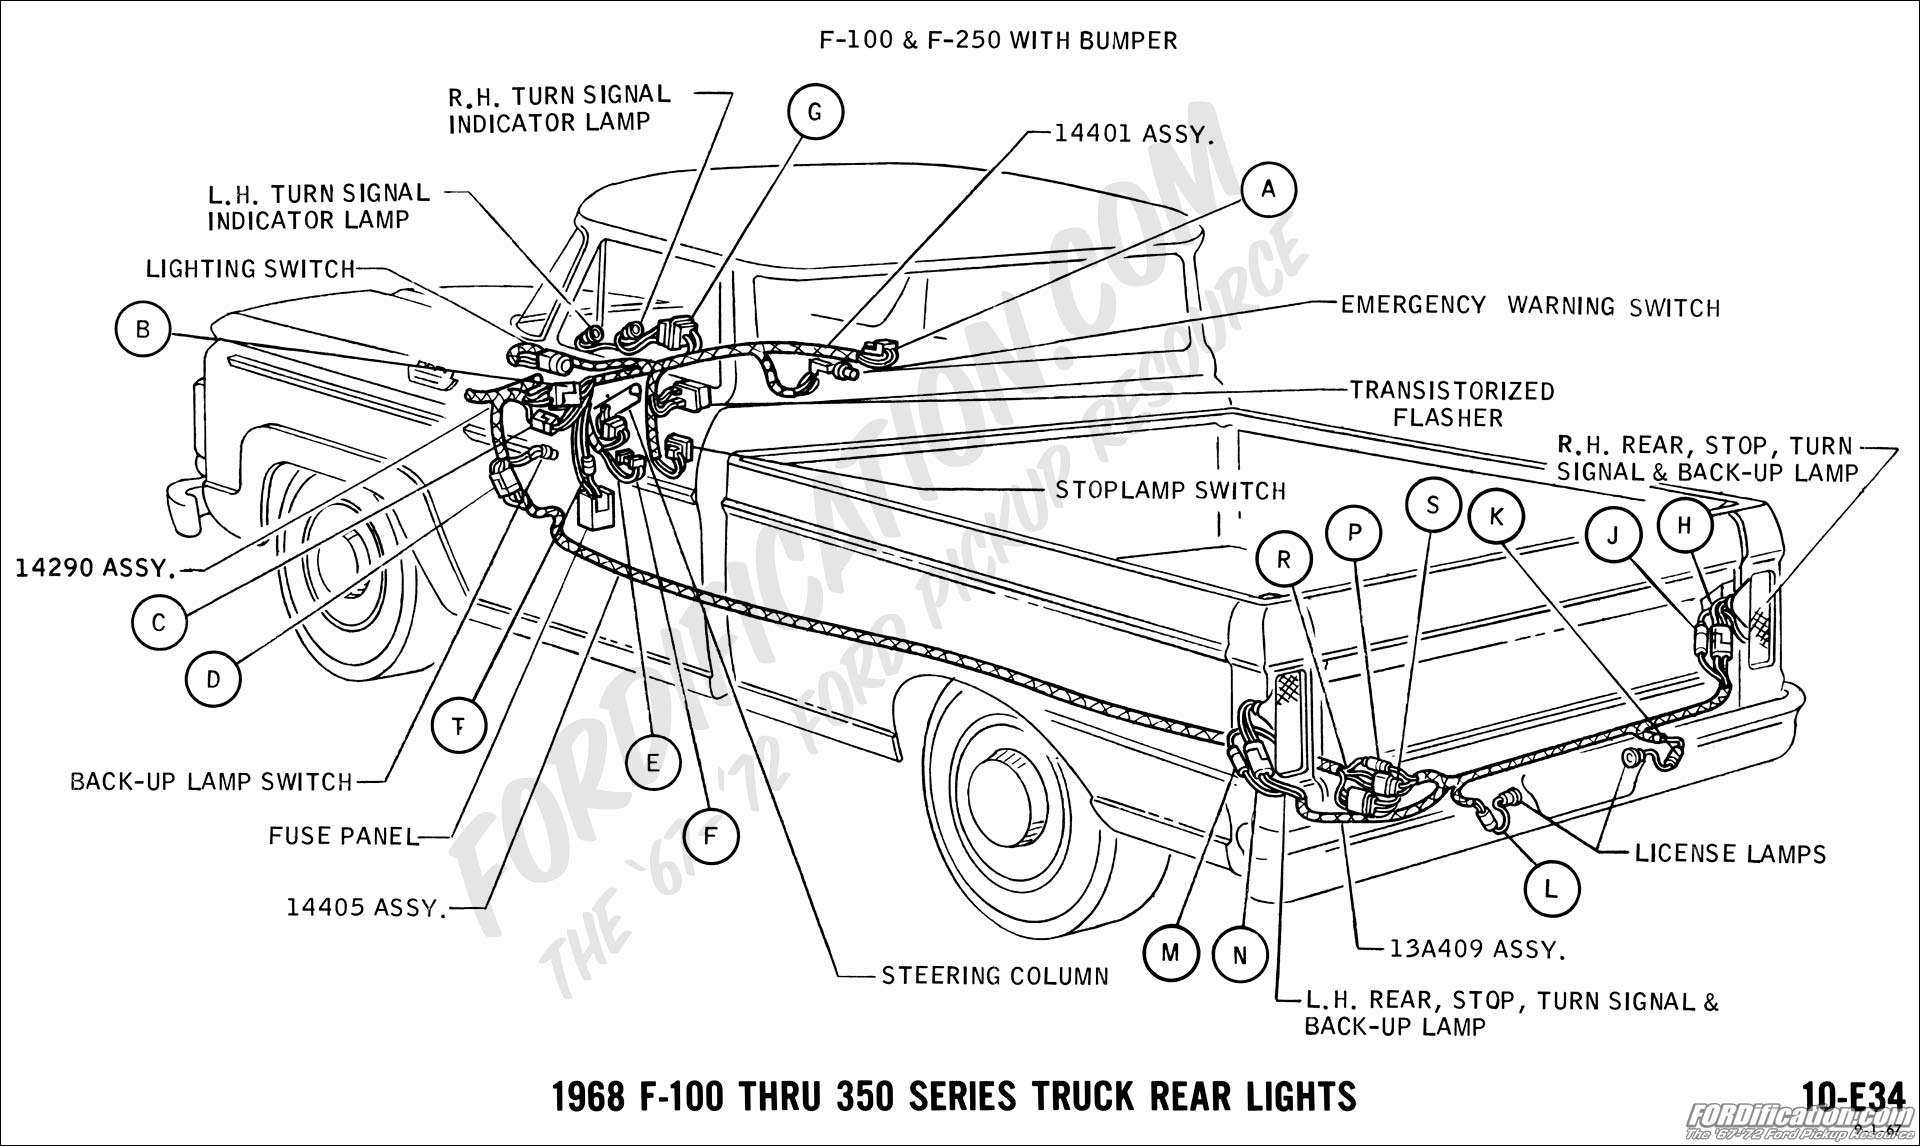 Back Up Lights Wiring Diagram F on fusion wiring diagram, taurus wiring diagram, civic wiring diagram, k5 blazer wiring diagram, model a wiring diagram, f250 super duty wiring diagram, f150 wiring diagram, bronco wiring diagram, windstar wiring diagram, crown victoria wiring diagram, mustang wiring diagram,